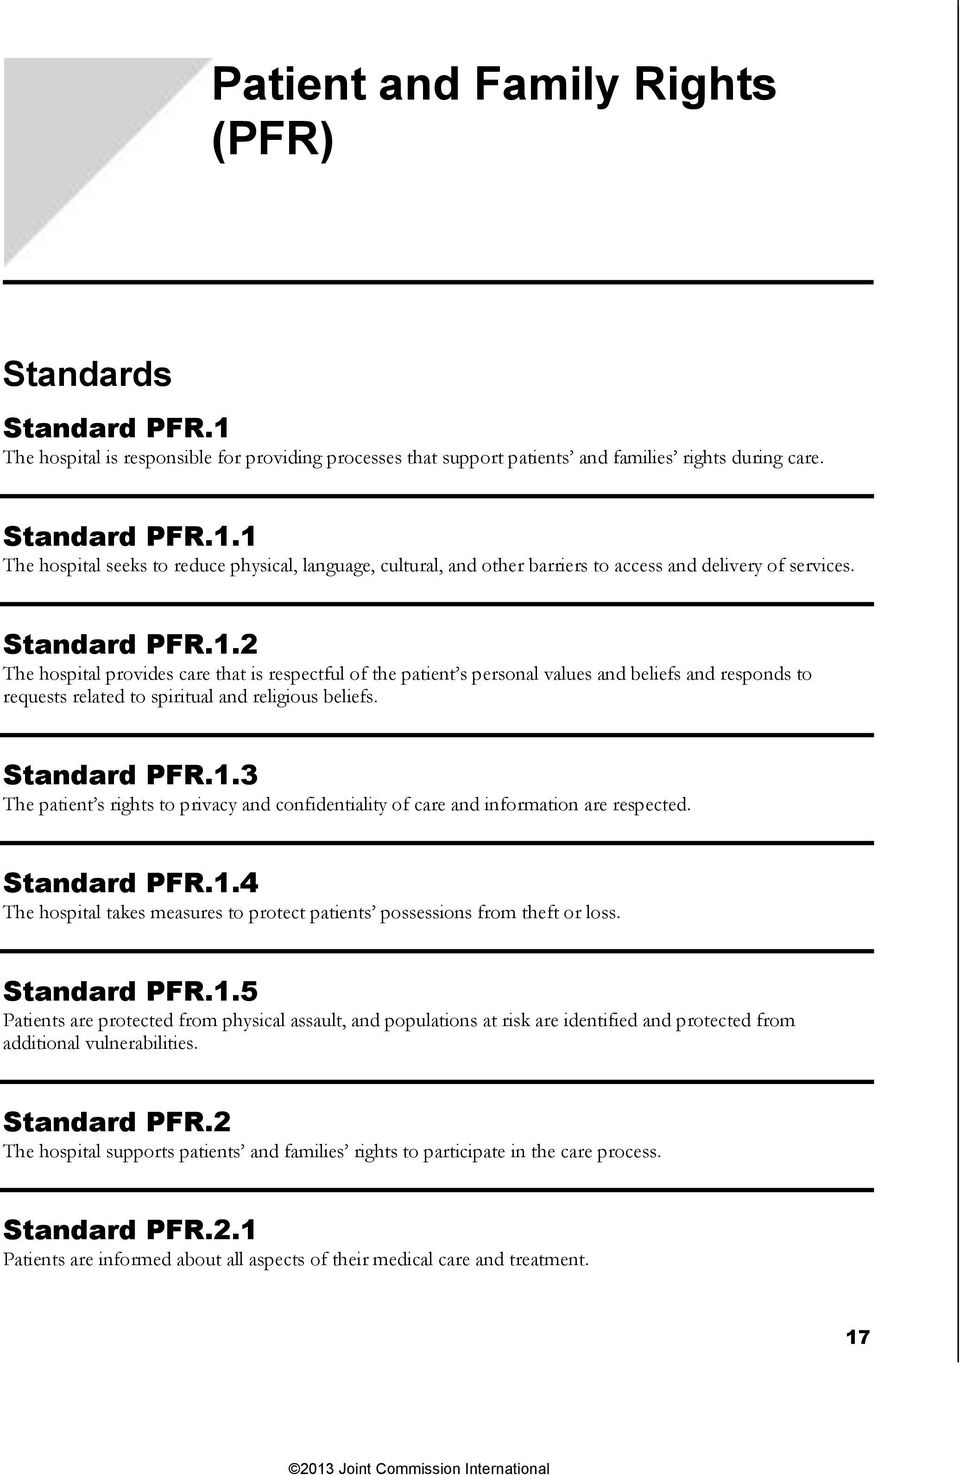 Standard PFR.1.4 The hospital takes measures to protect patients possessions from theft or loss. Standard PFR.1.5 Patients are protected from physical assault, and populations at risk are identified and protected from additional vulnerabilities.